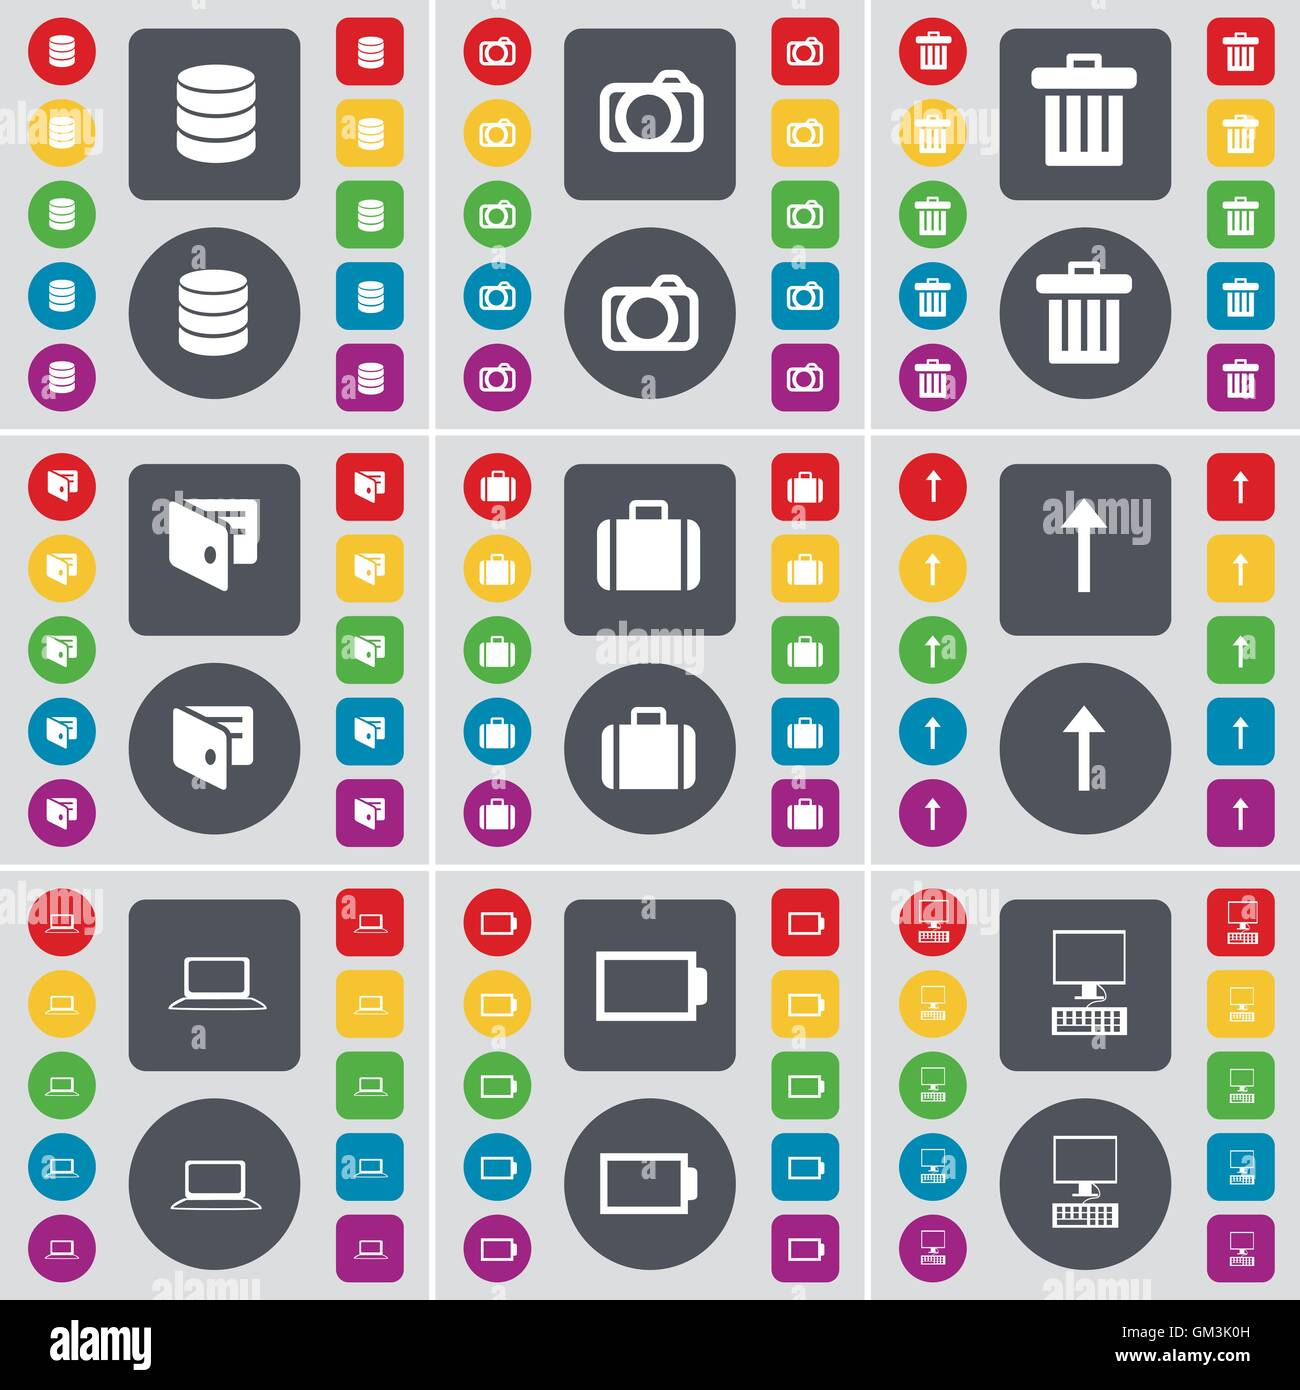 Database, Camera, Trash can, Wallet, Suitcase, Arrow up, Laptop, Battery, PC icon symbol. A large set of flat, colored - Stock Image